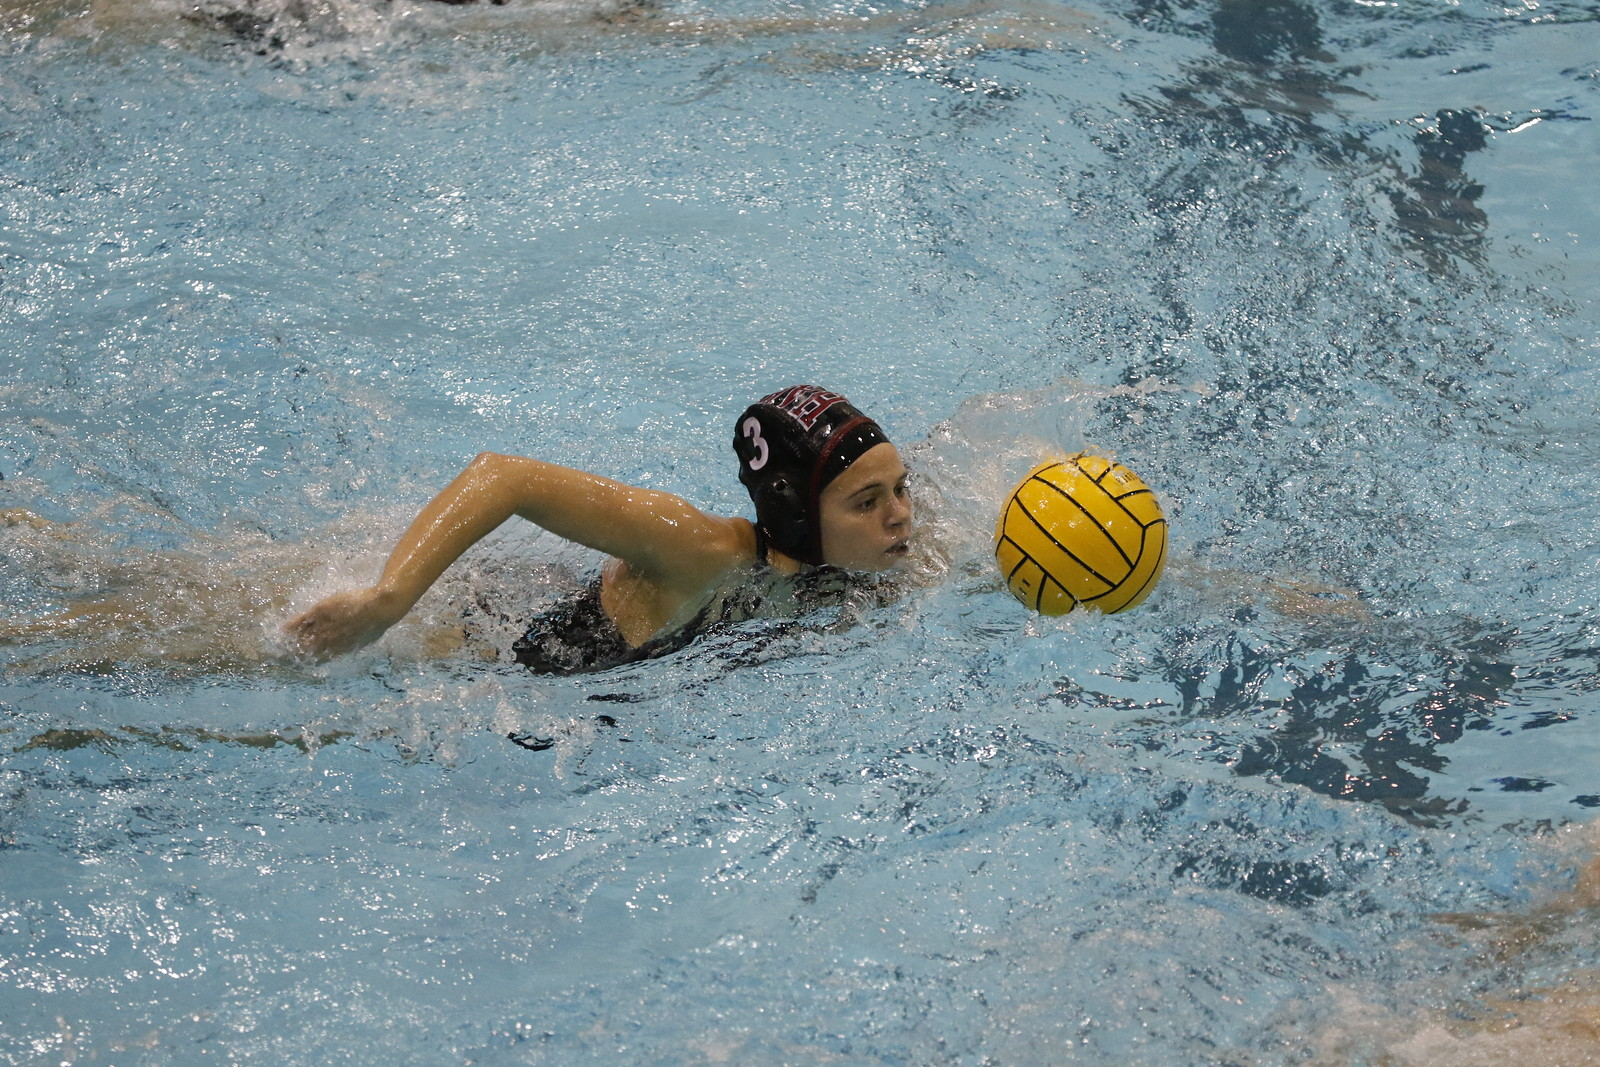 This past weekend saw the women's water polo team battle against tough, nationally-ranked opponents. After finishing fourth at the CWPA championships, the team finished the season with a 21-8 record, only the fifth time in team history it has eclipsed the 20-win mark.